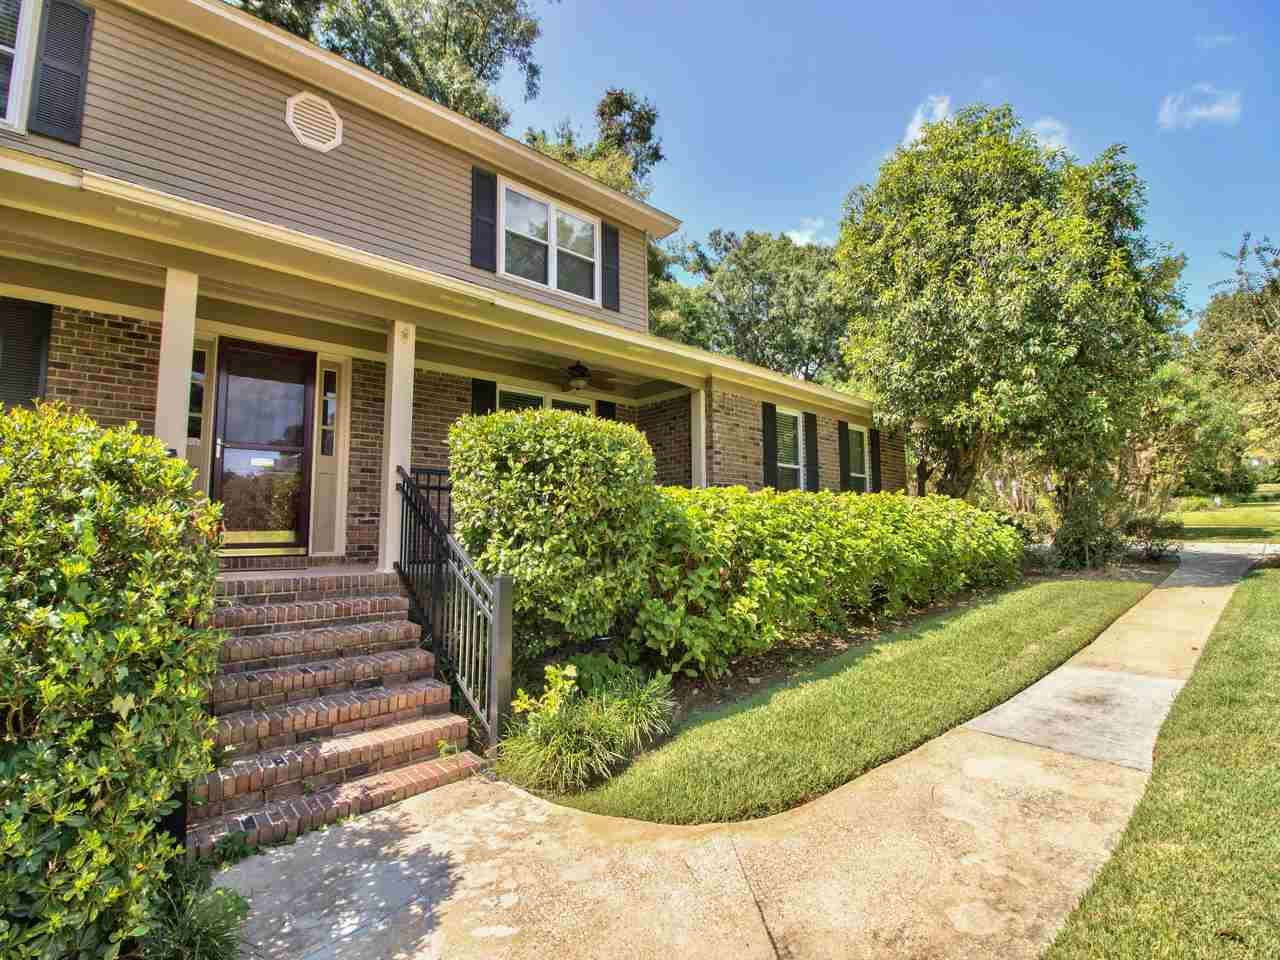 Photo of 3067 Waterford Drive, TALLAHASSEE, FL 32309 (MLS # 316518)